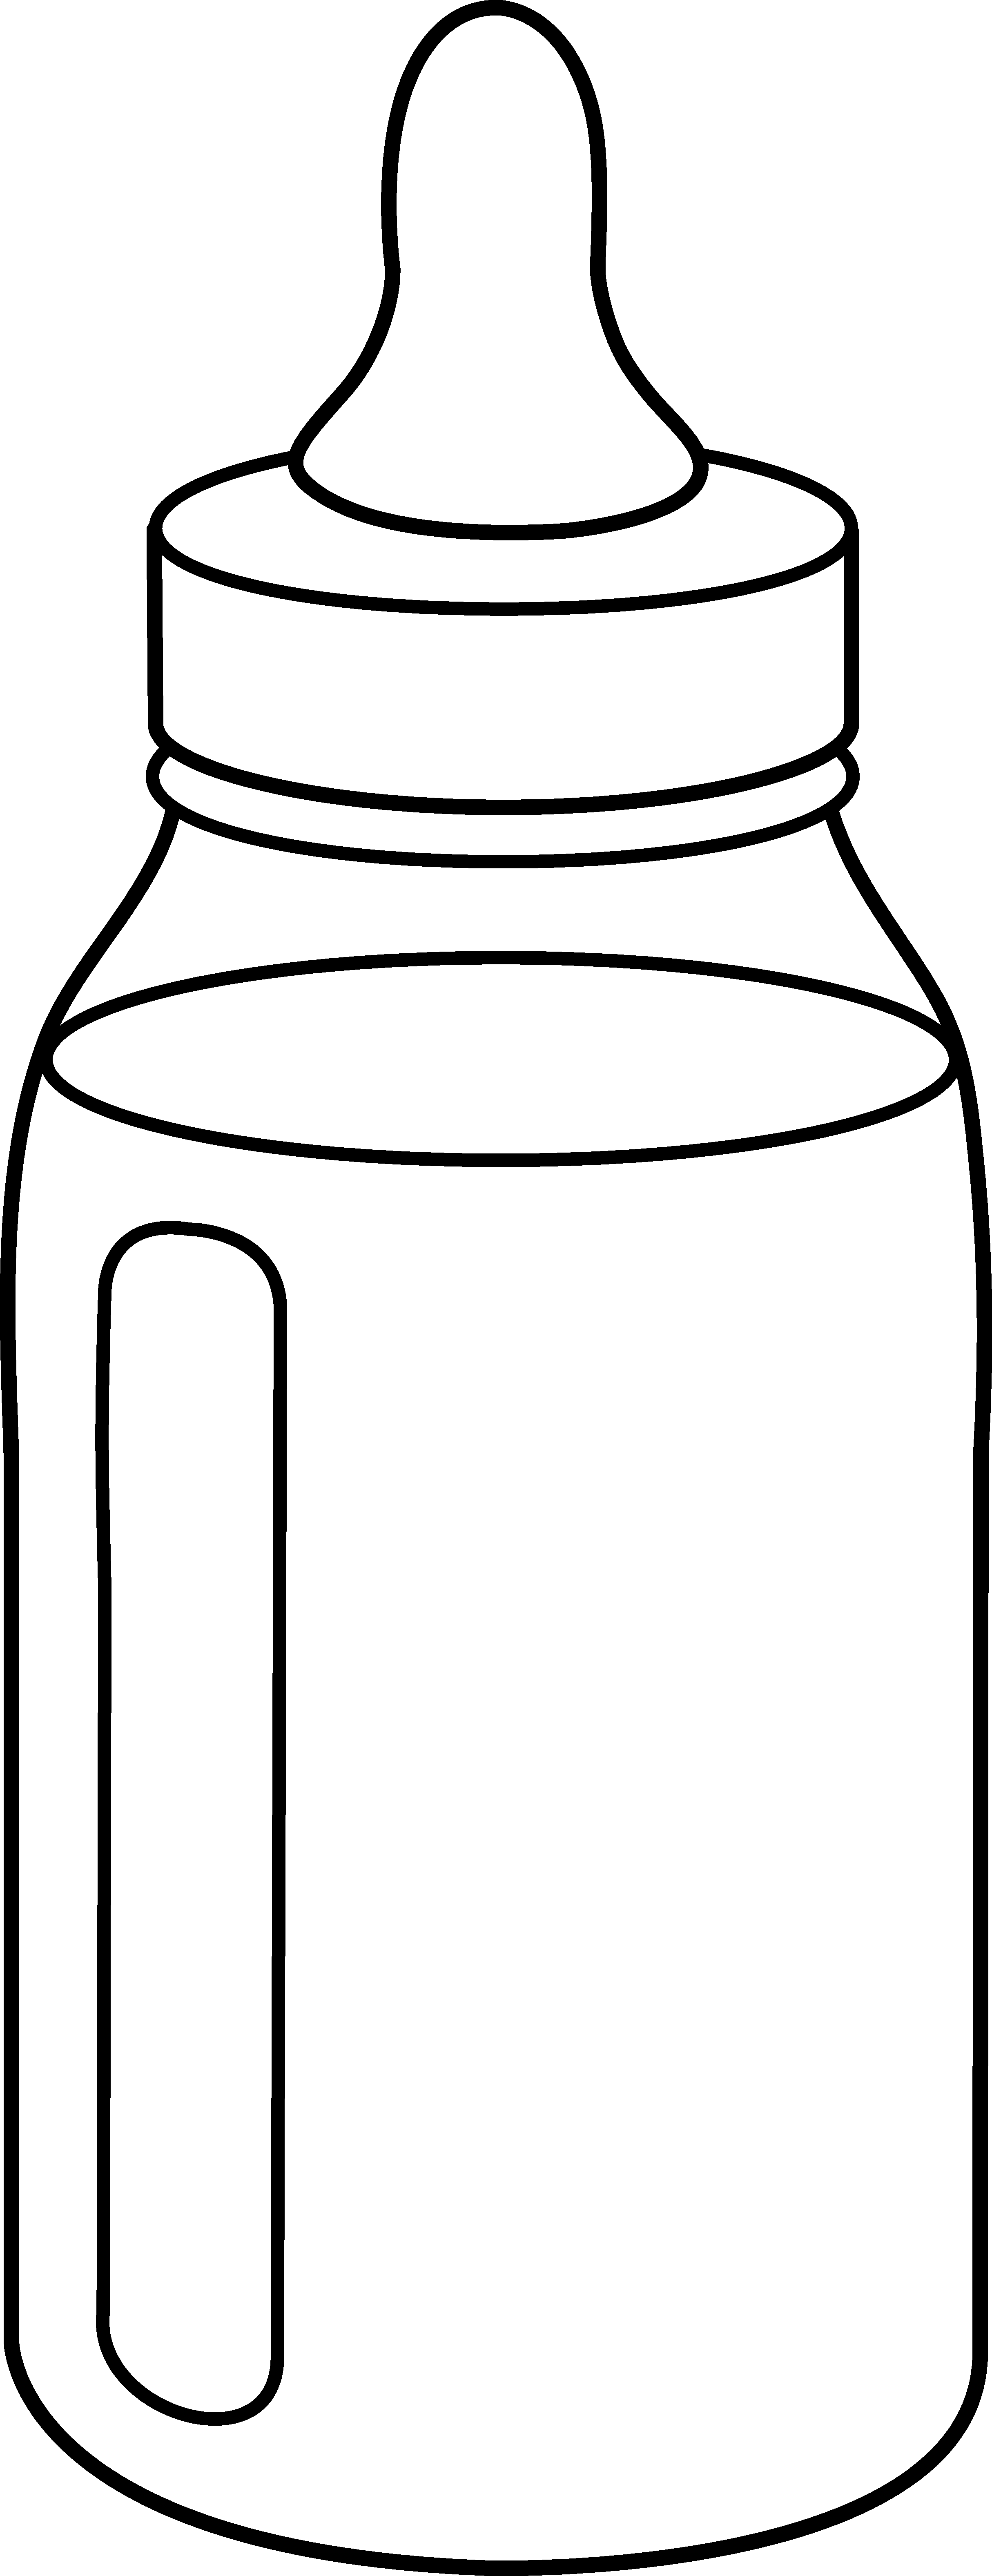 Free Baby Bottle Pictures, Download Free Clip Art, Free Clip Art on.